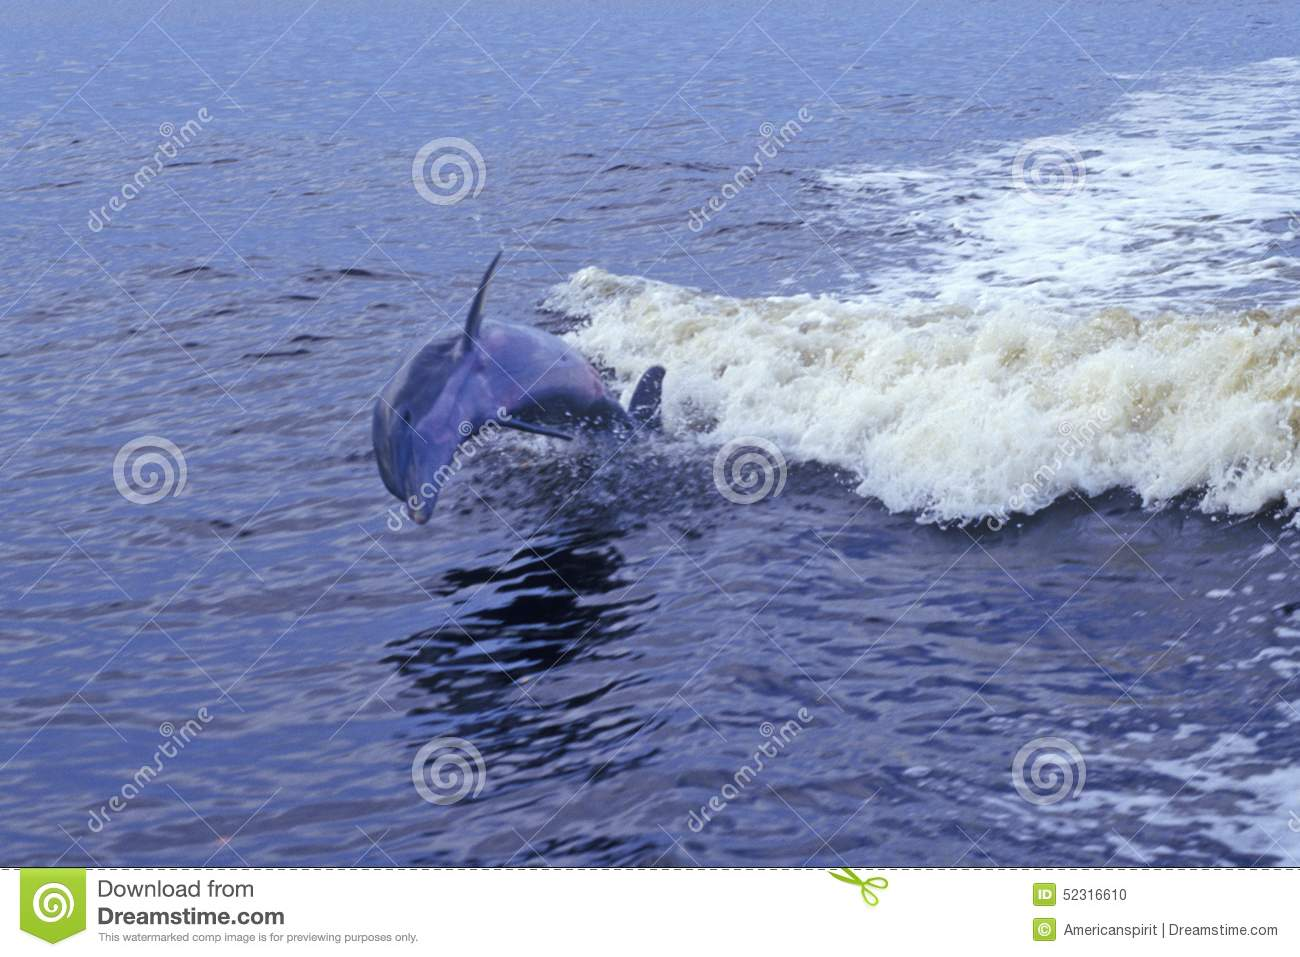 Dolphin playing in water, Everglades National Park, 10, 000 Islands, FL